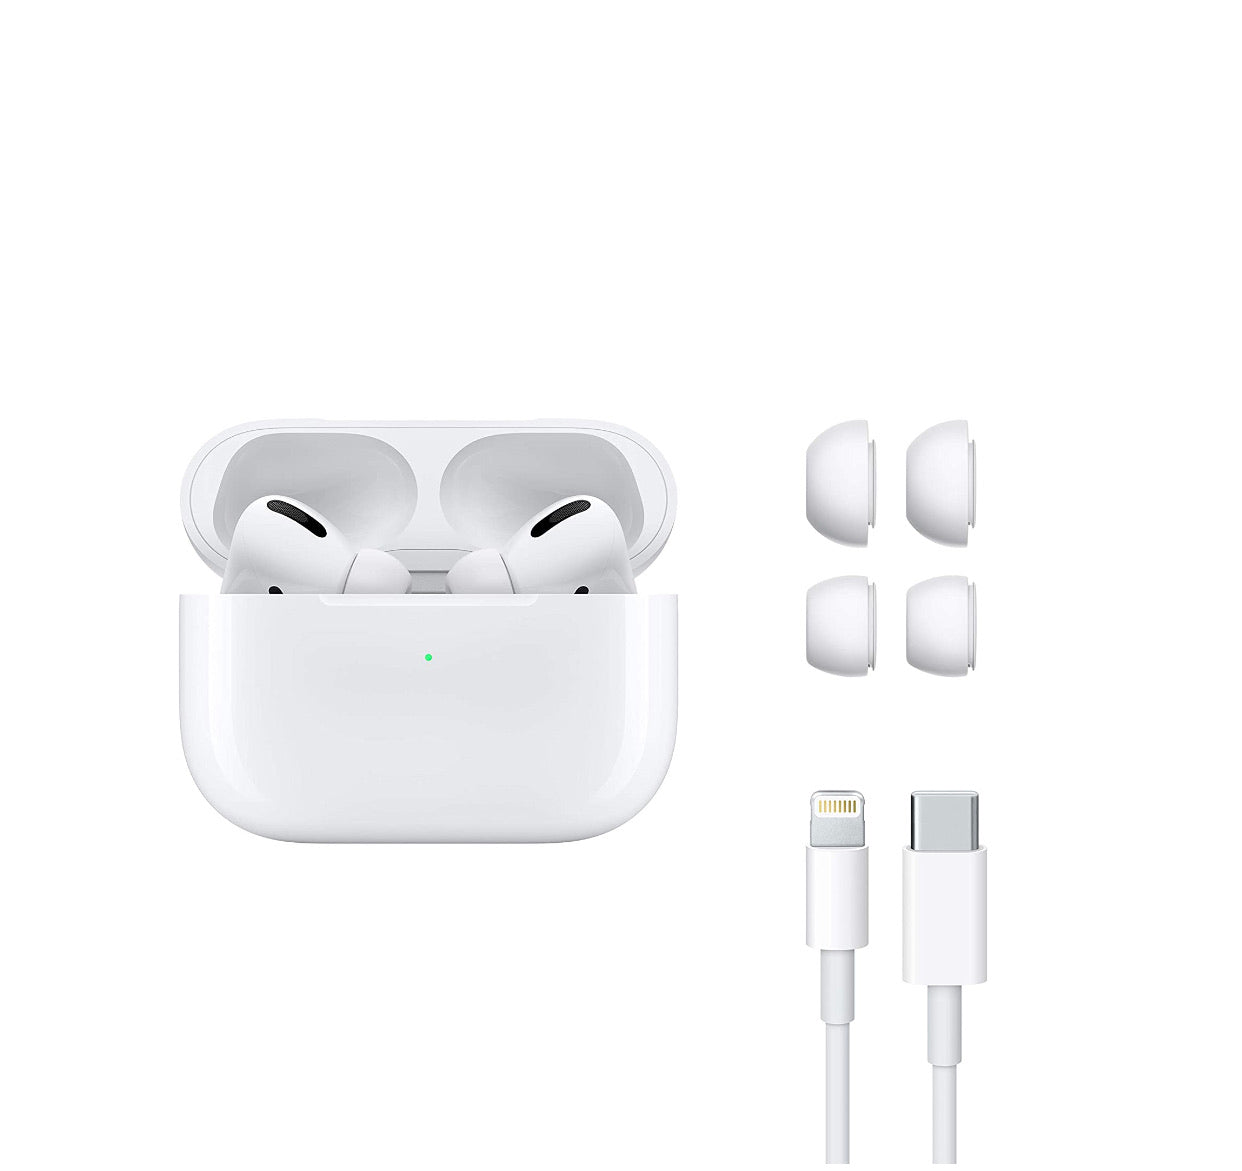 Apple Wireless AirPods Pro MWP22HN/A with Wireless Charging Case,White - E MIRA ROAD